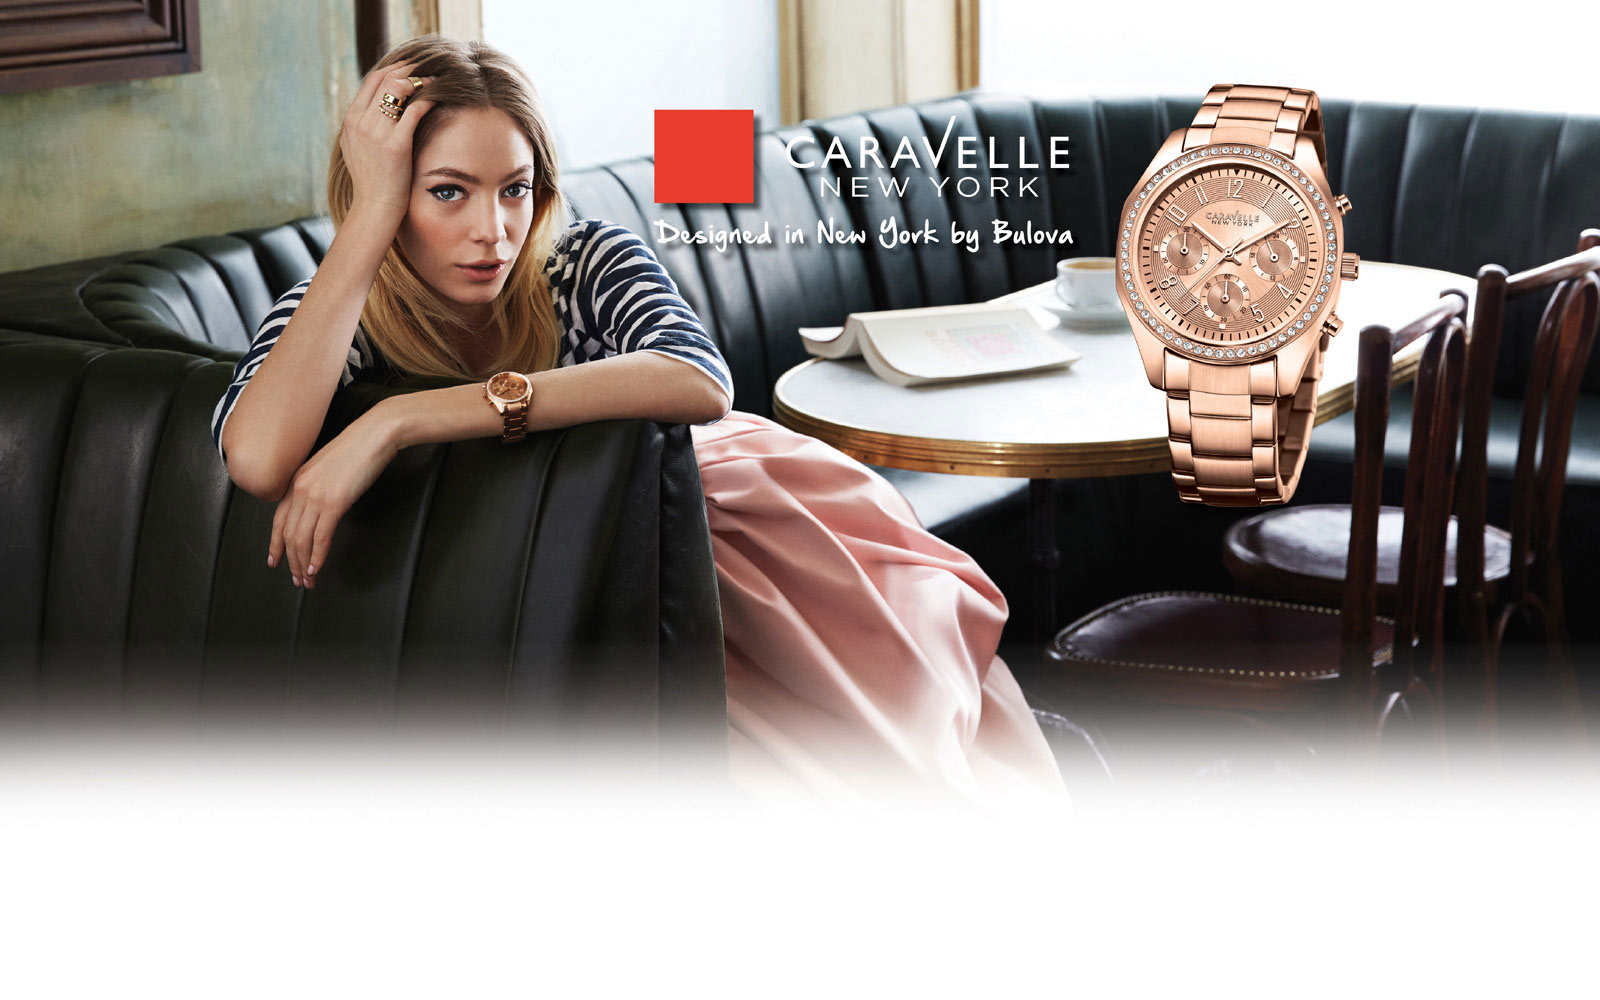 Shop Caravelle New York Watches at H.Samuel